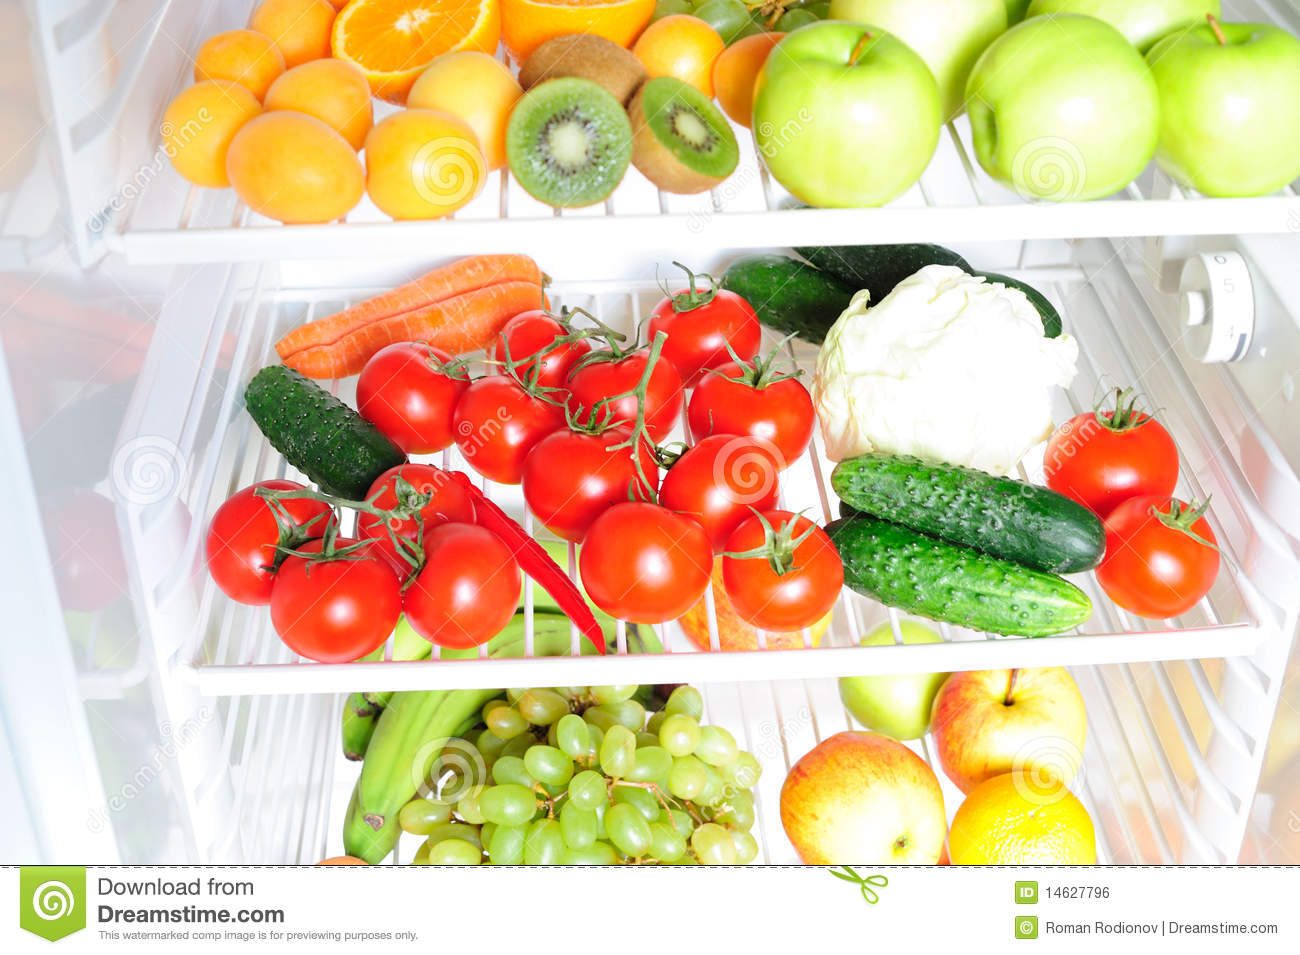 Fruit And Vegetables In The Fridge Royalty Free Stock